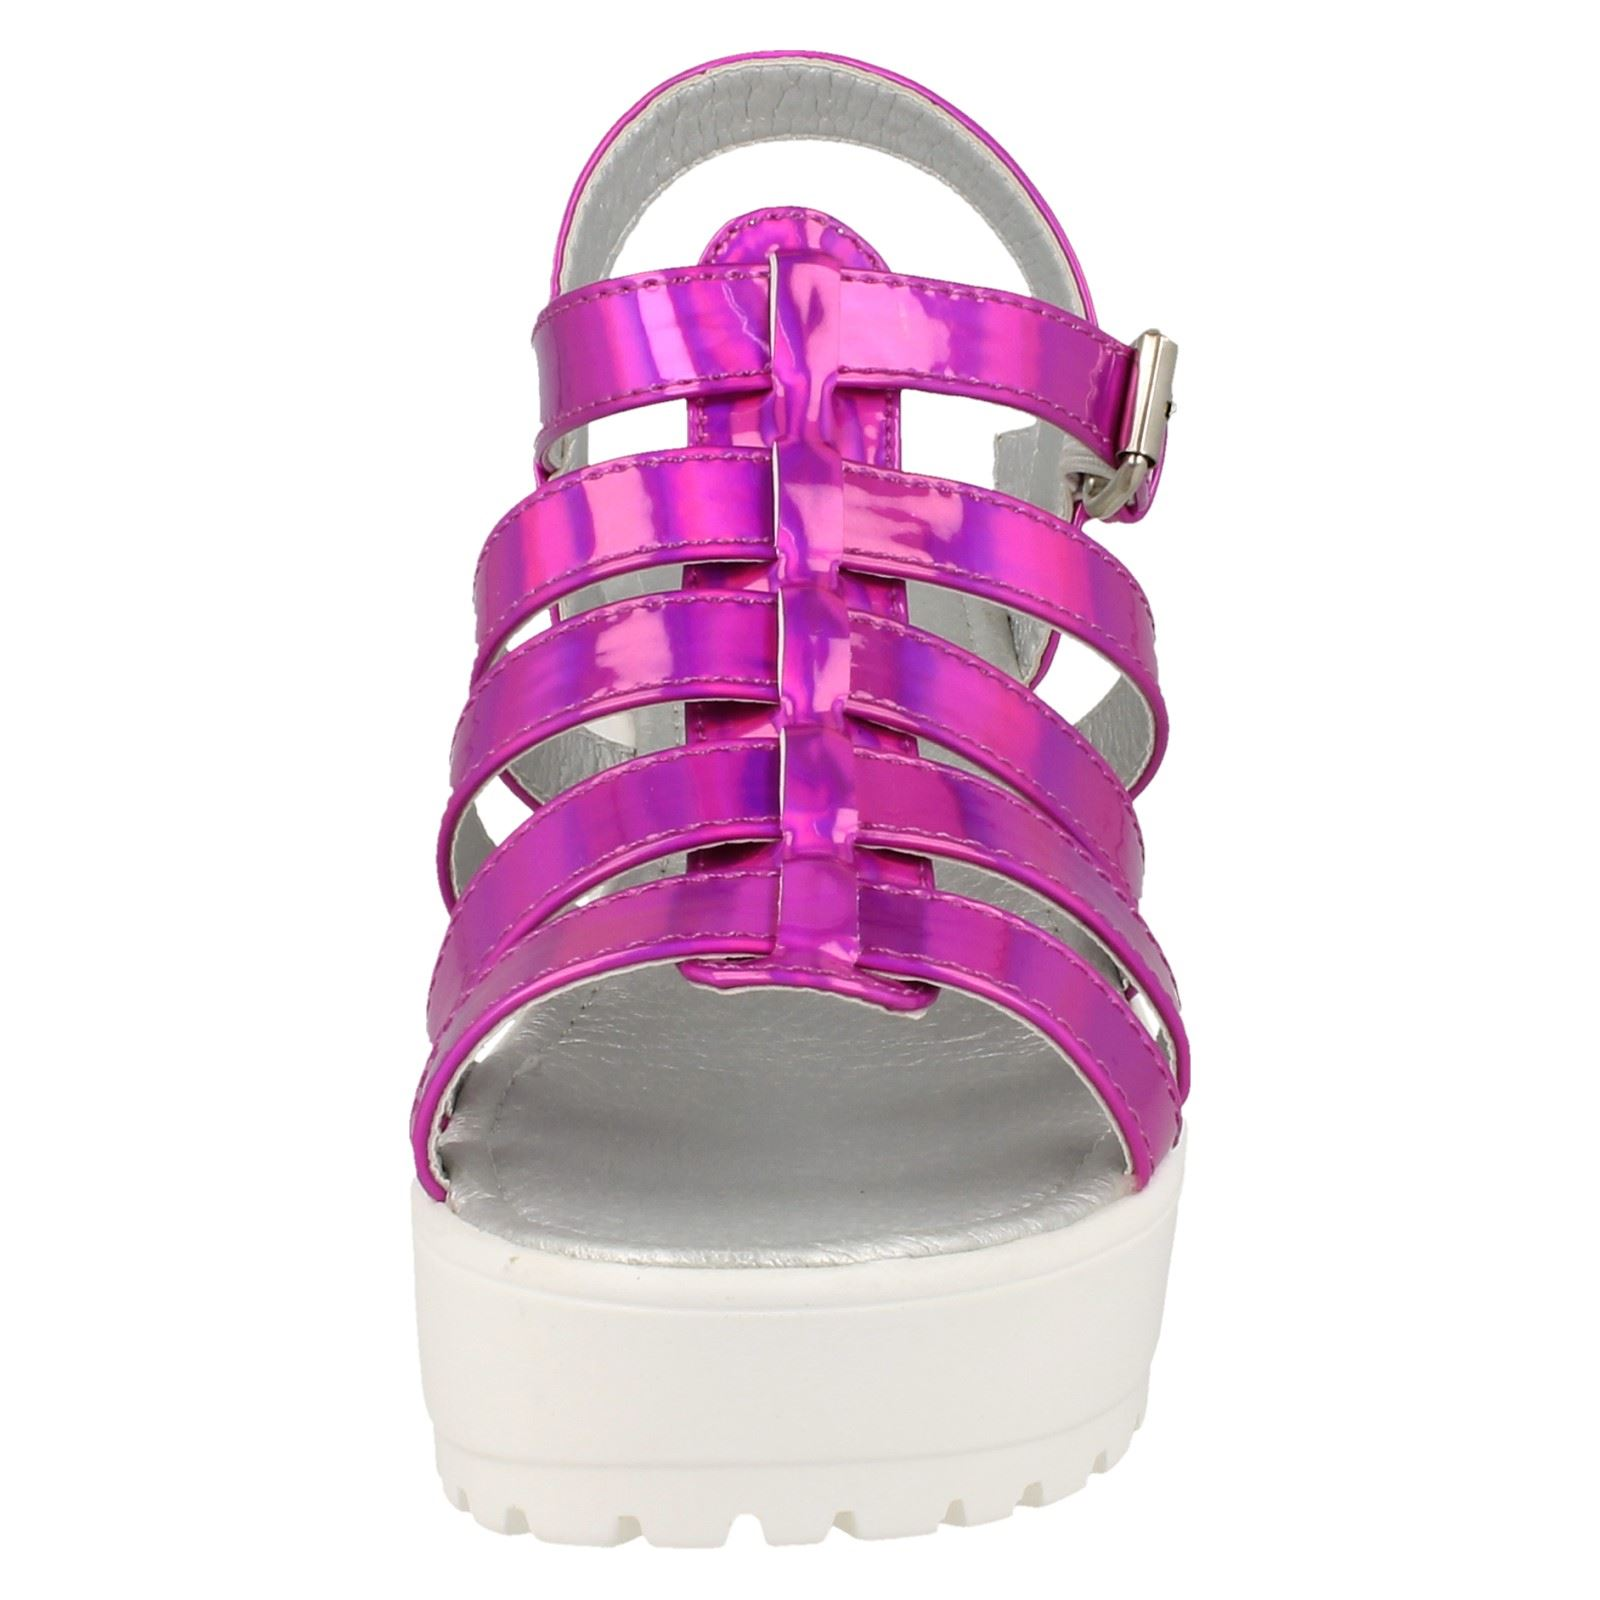 Girls Spot On Sandals H1067 Label ~ K